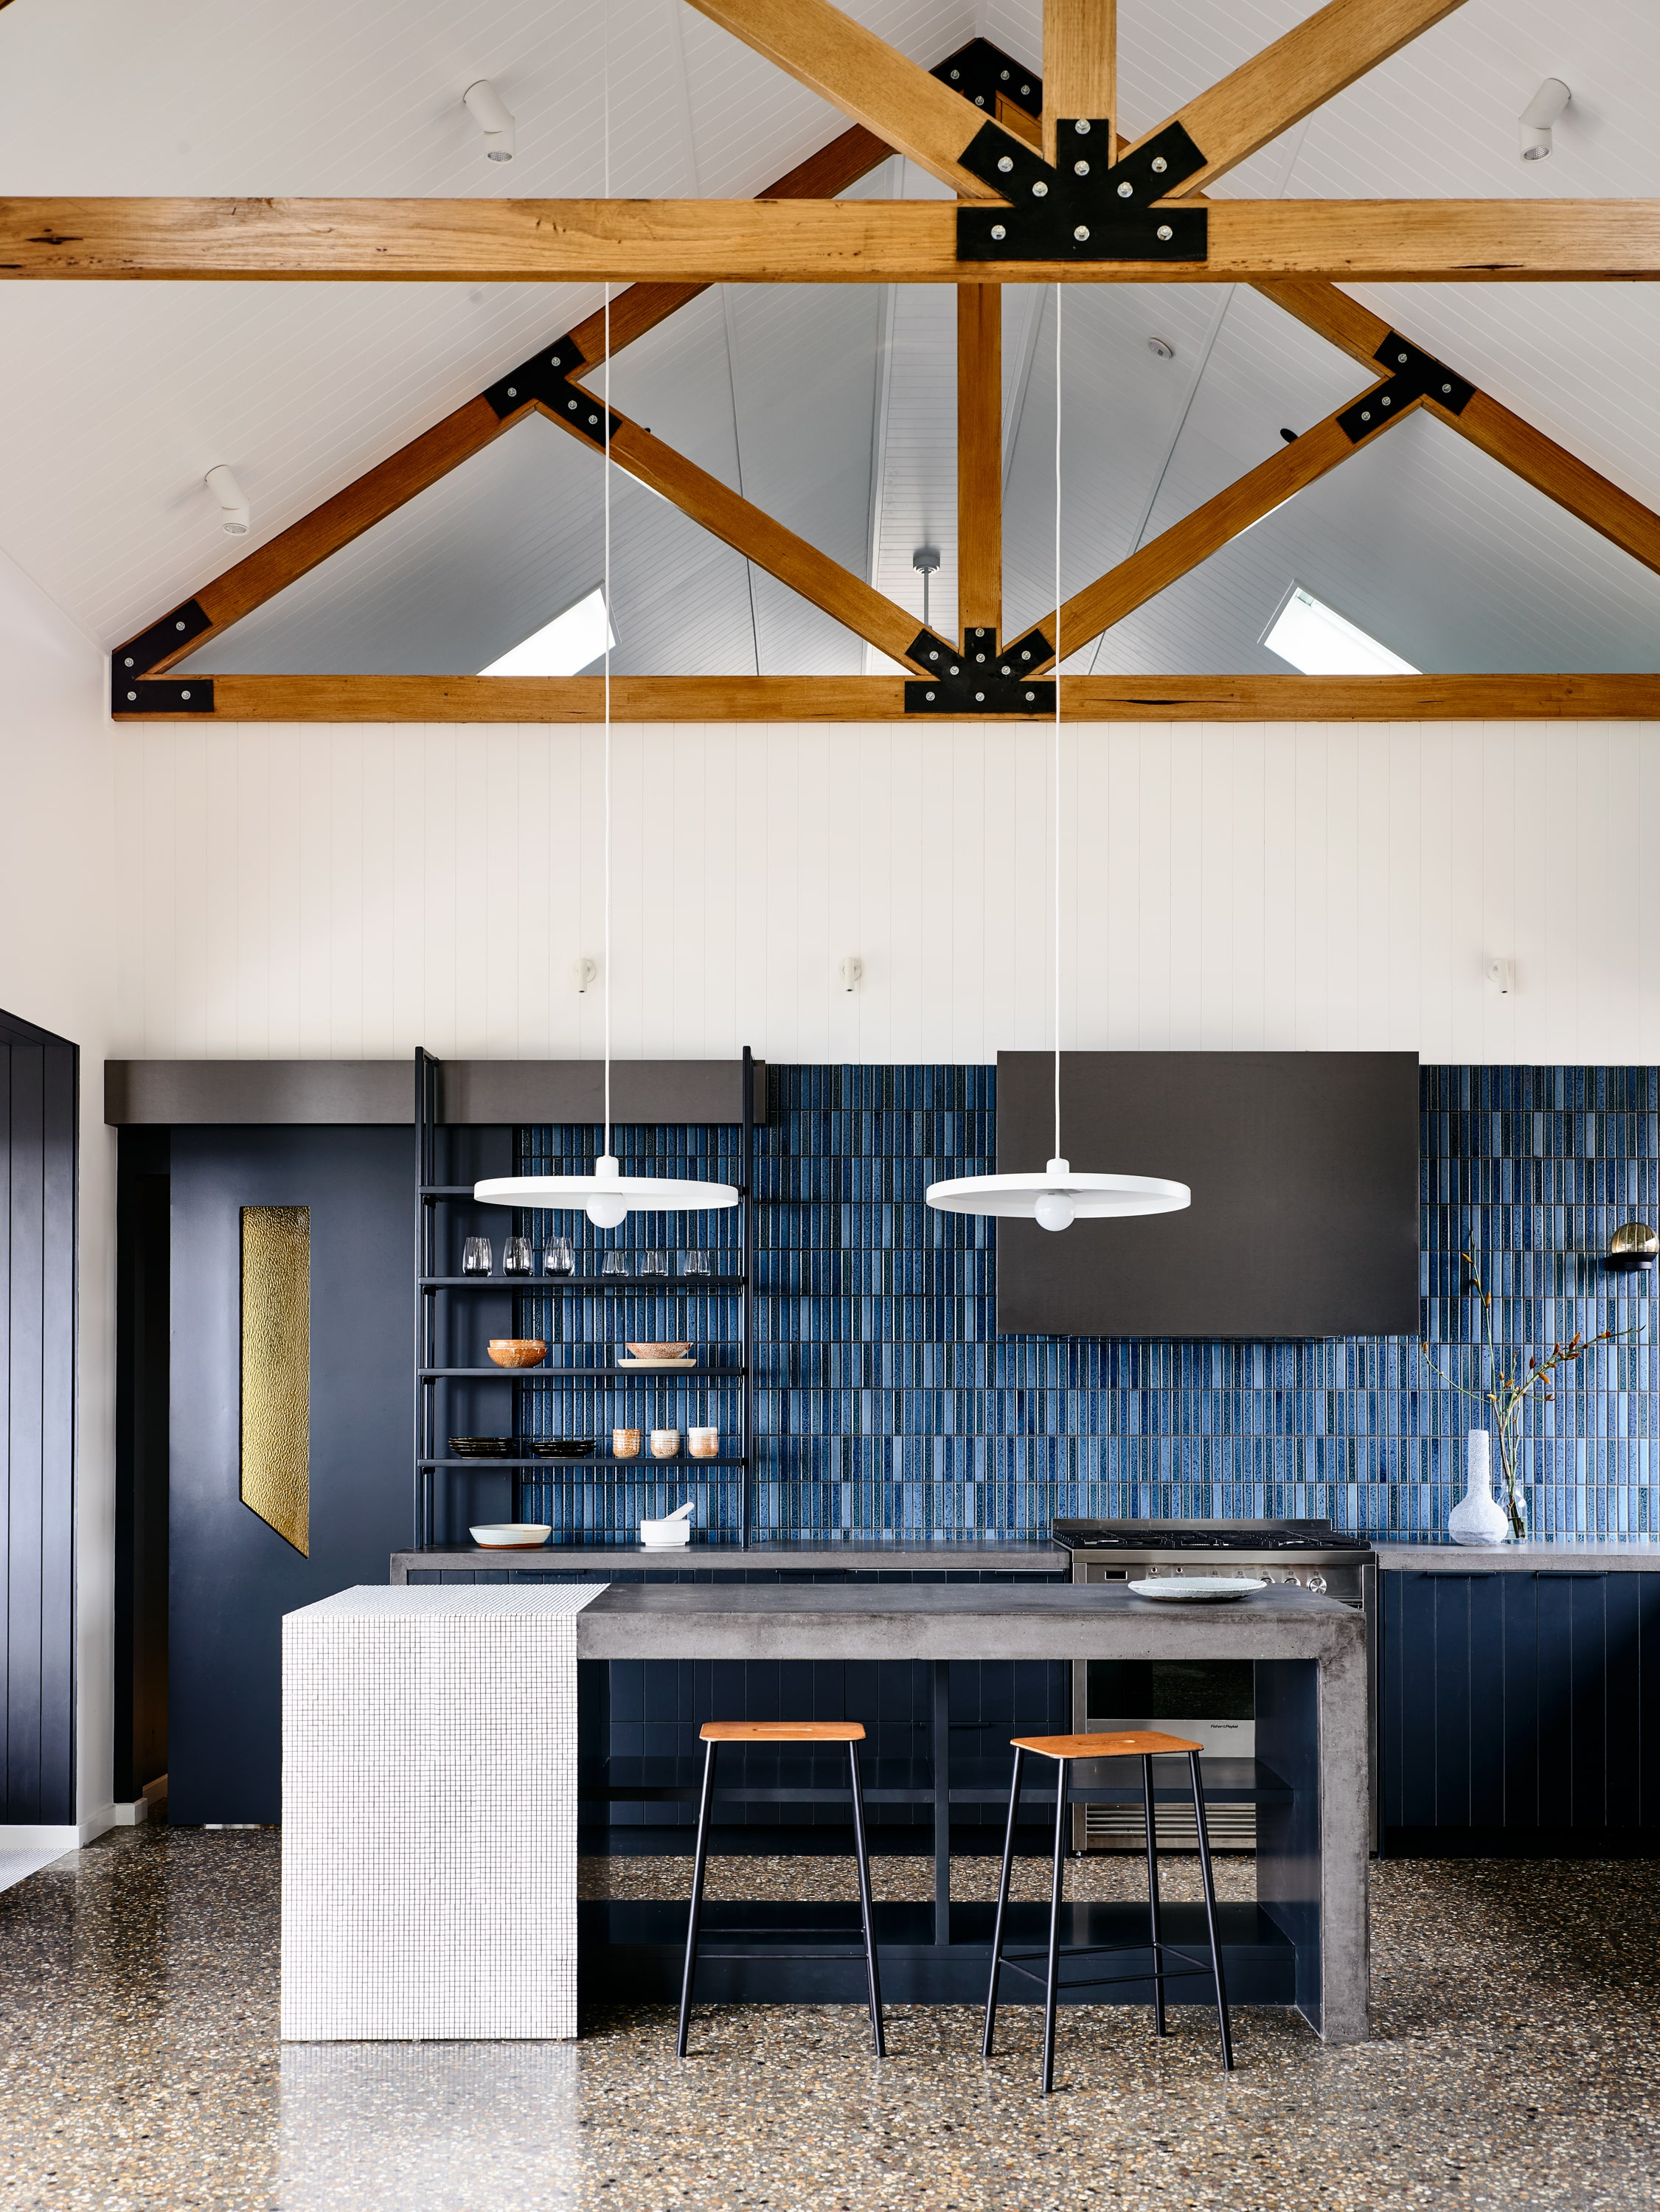 Beechworth Residential Project By Doherty Design Studio Photographed By Derek Swalwell Project Feature Local Australian Architecture And Interior Designdds Beechworth002 Min